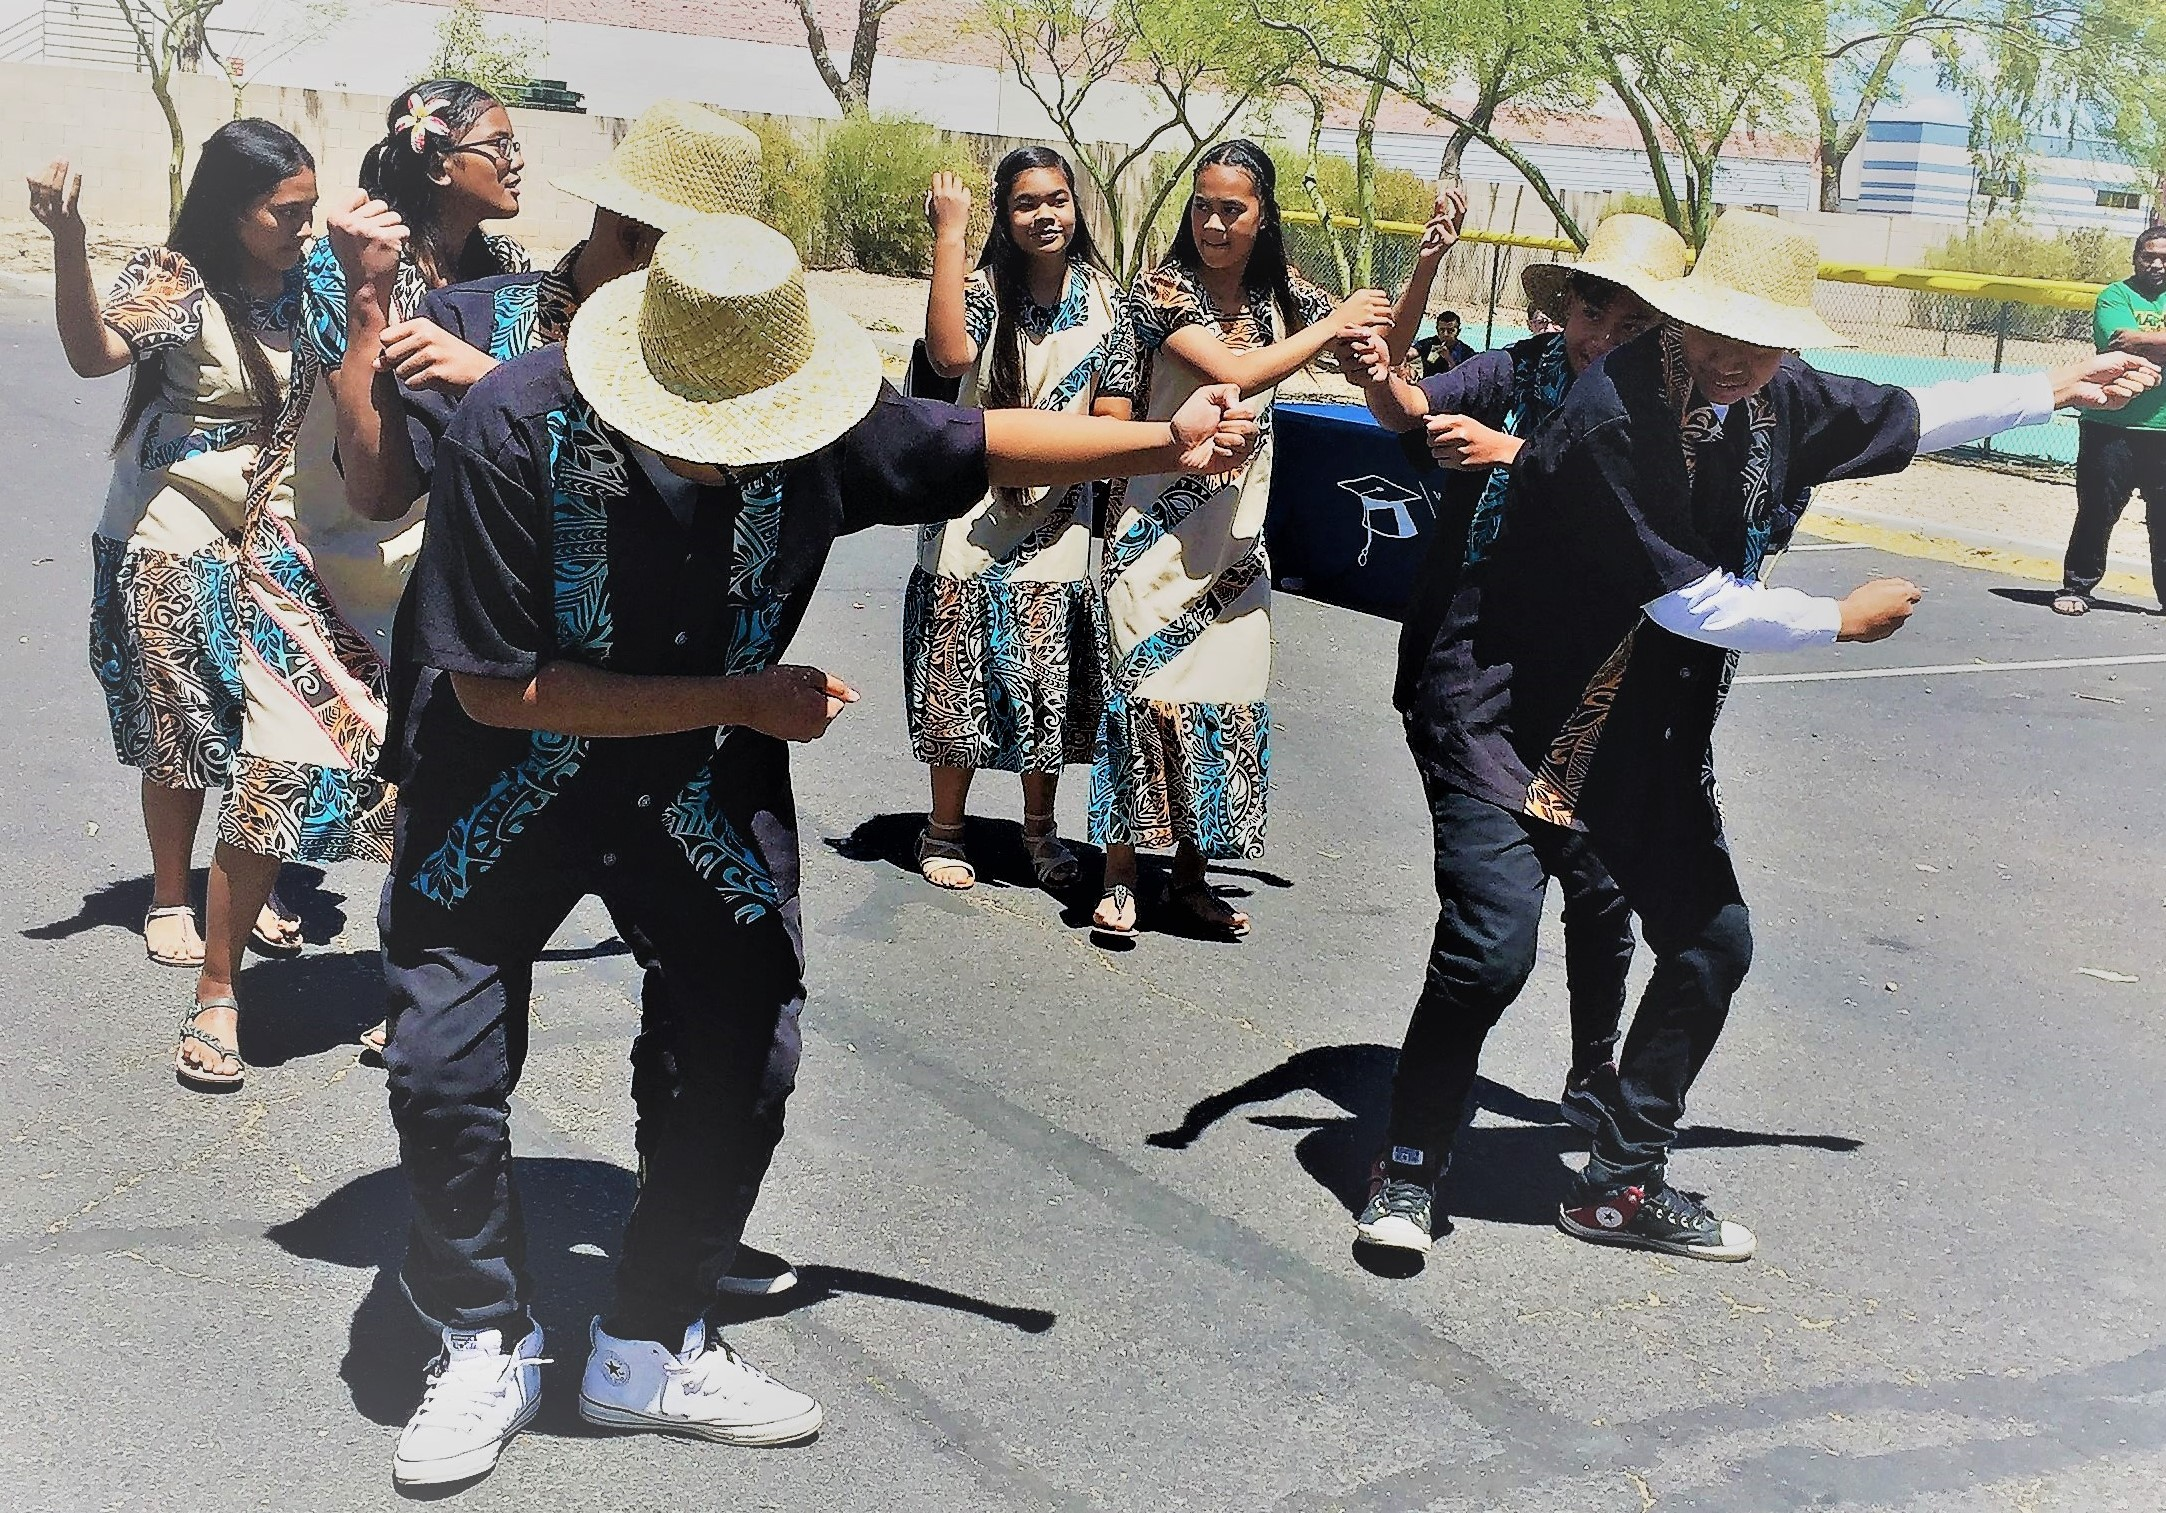 April 2017-RMI youth performs for Healthy Kids Day at YMCA, Maryvale